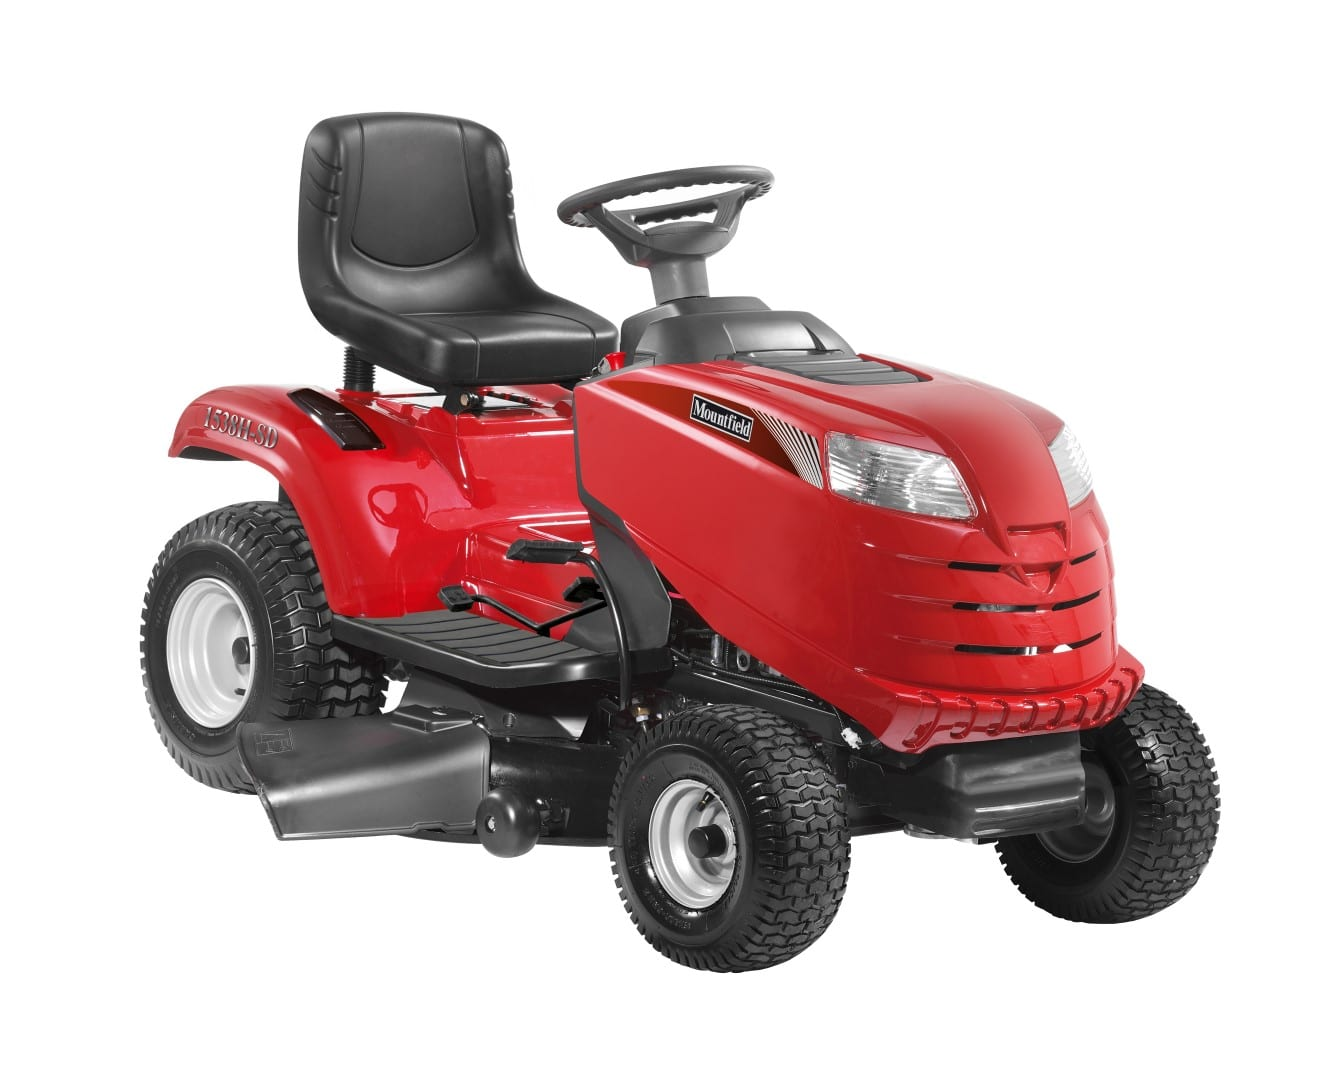 Mountfield 1538H-SD 98cm Side Discharge Lawn Tractor